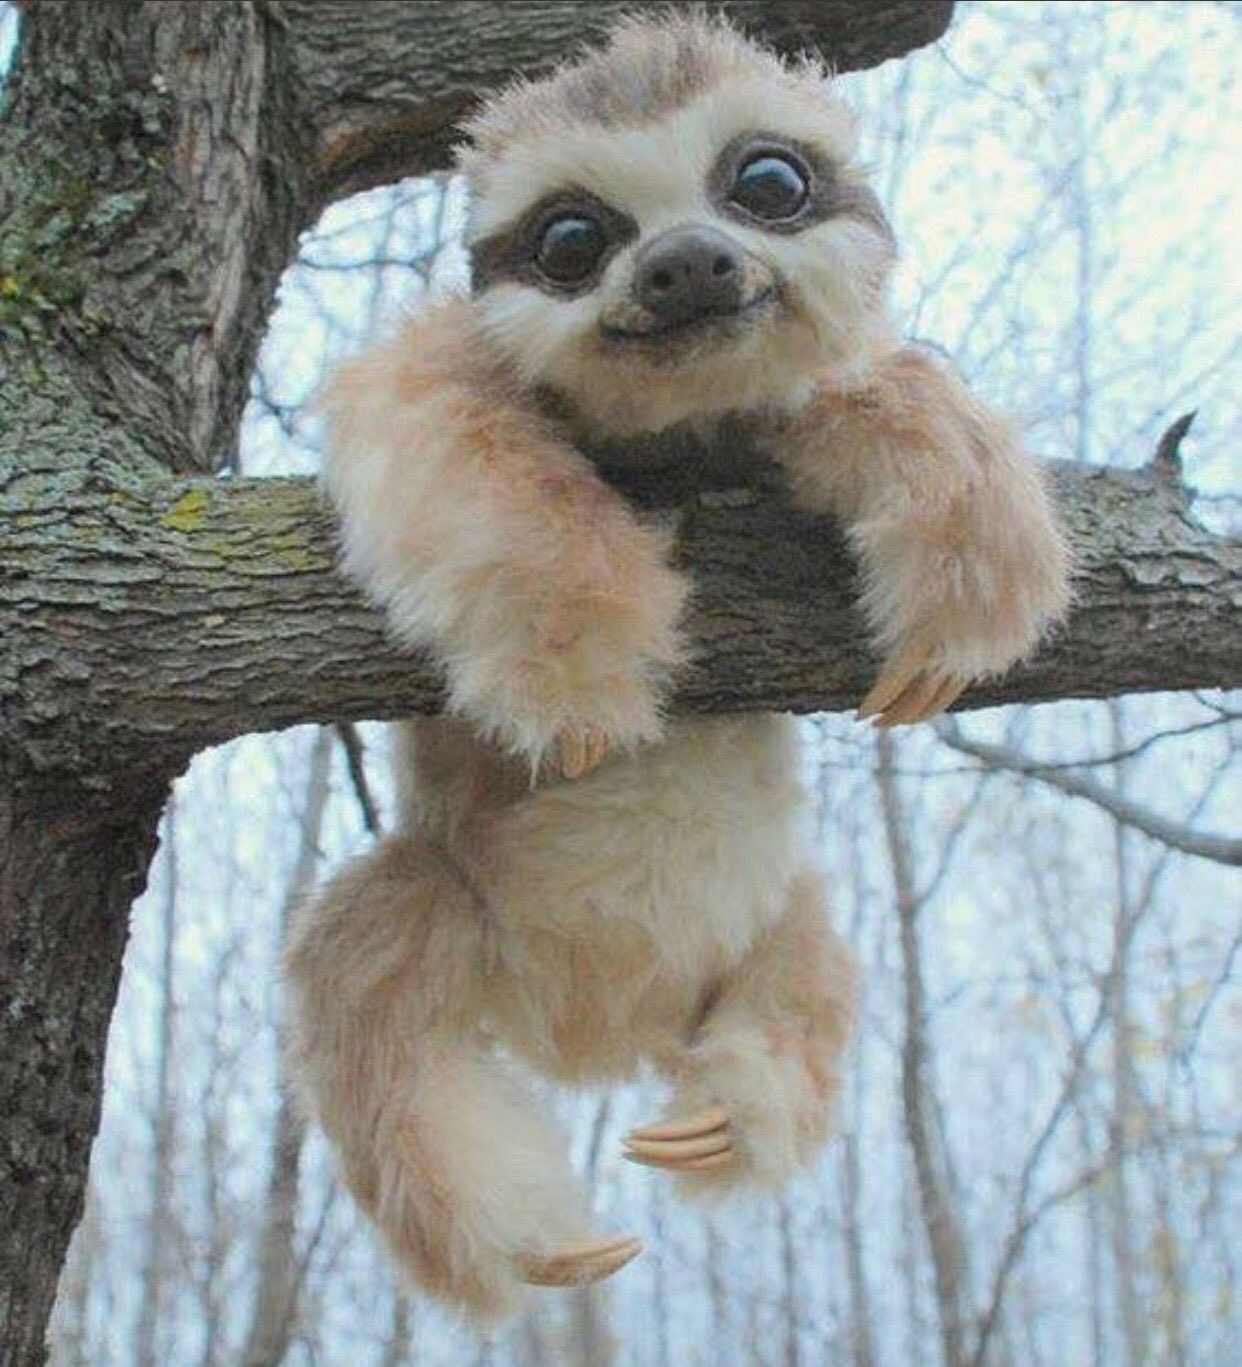 I don't normally like sloths all that much, but this mf is